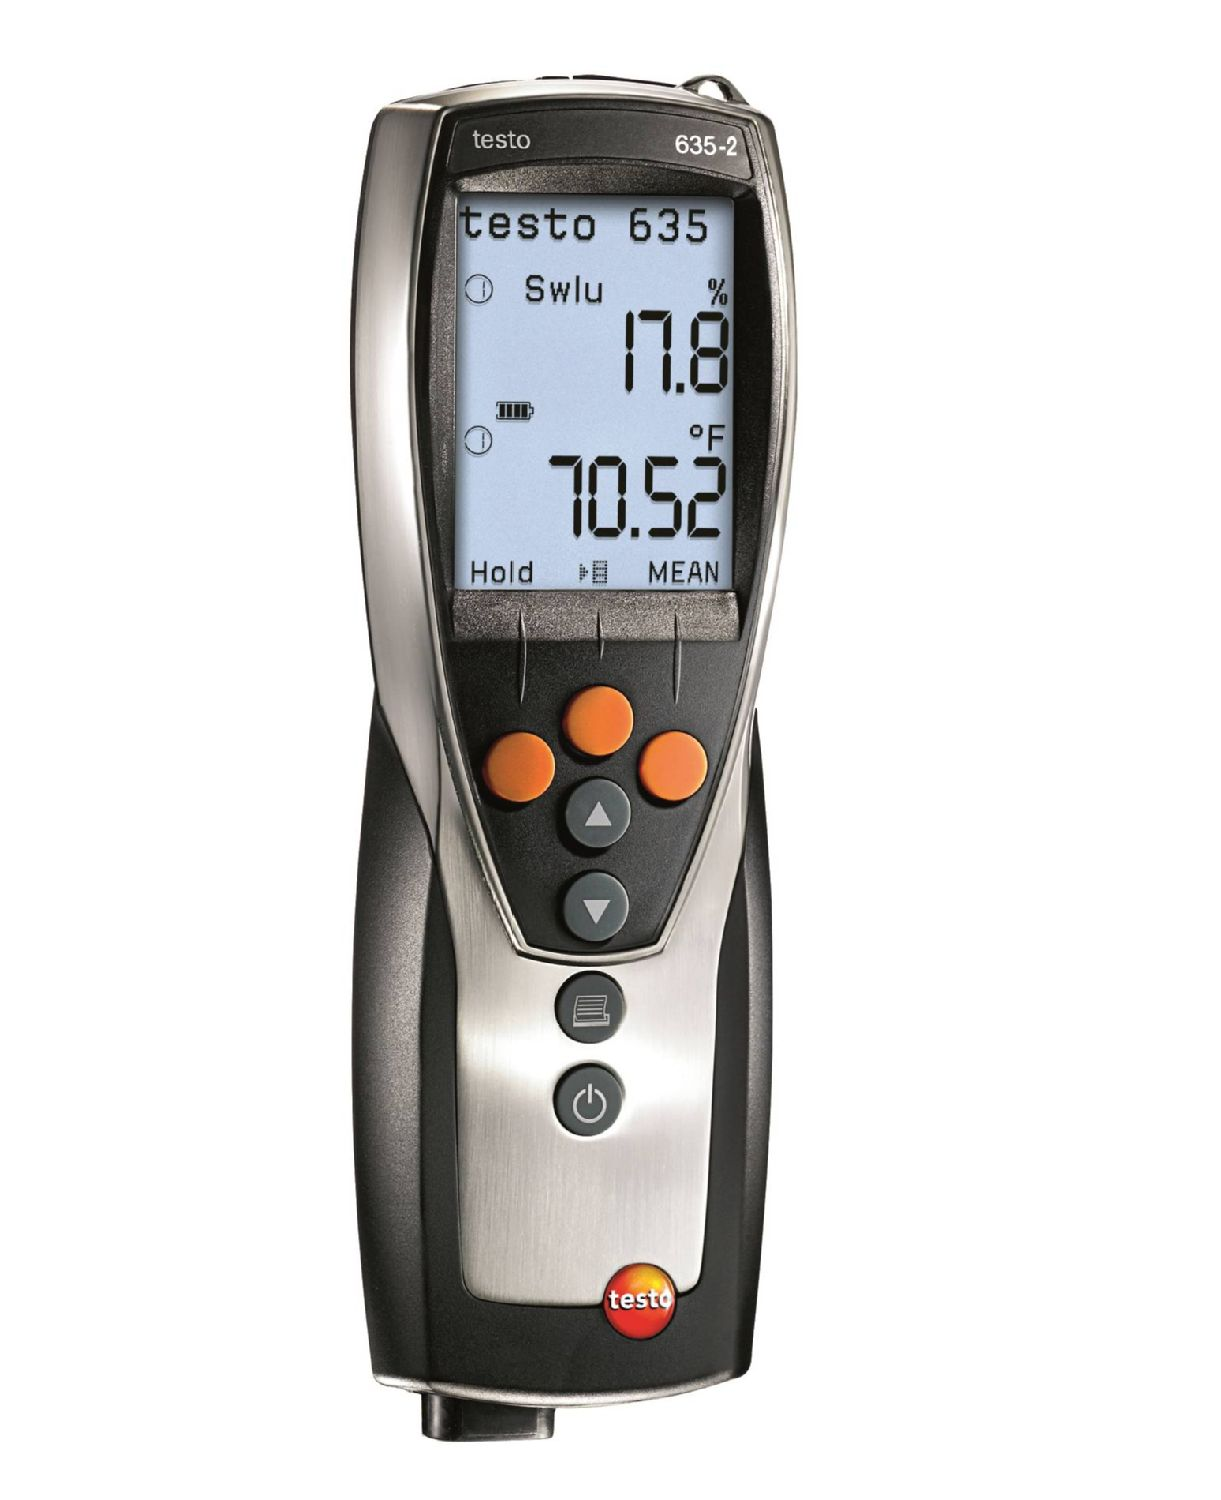 testo-635-2-humidity-temperature-measuring-instrument.jpg